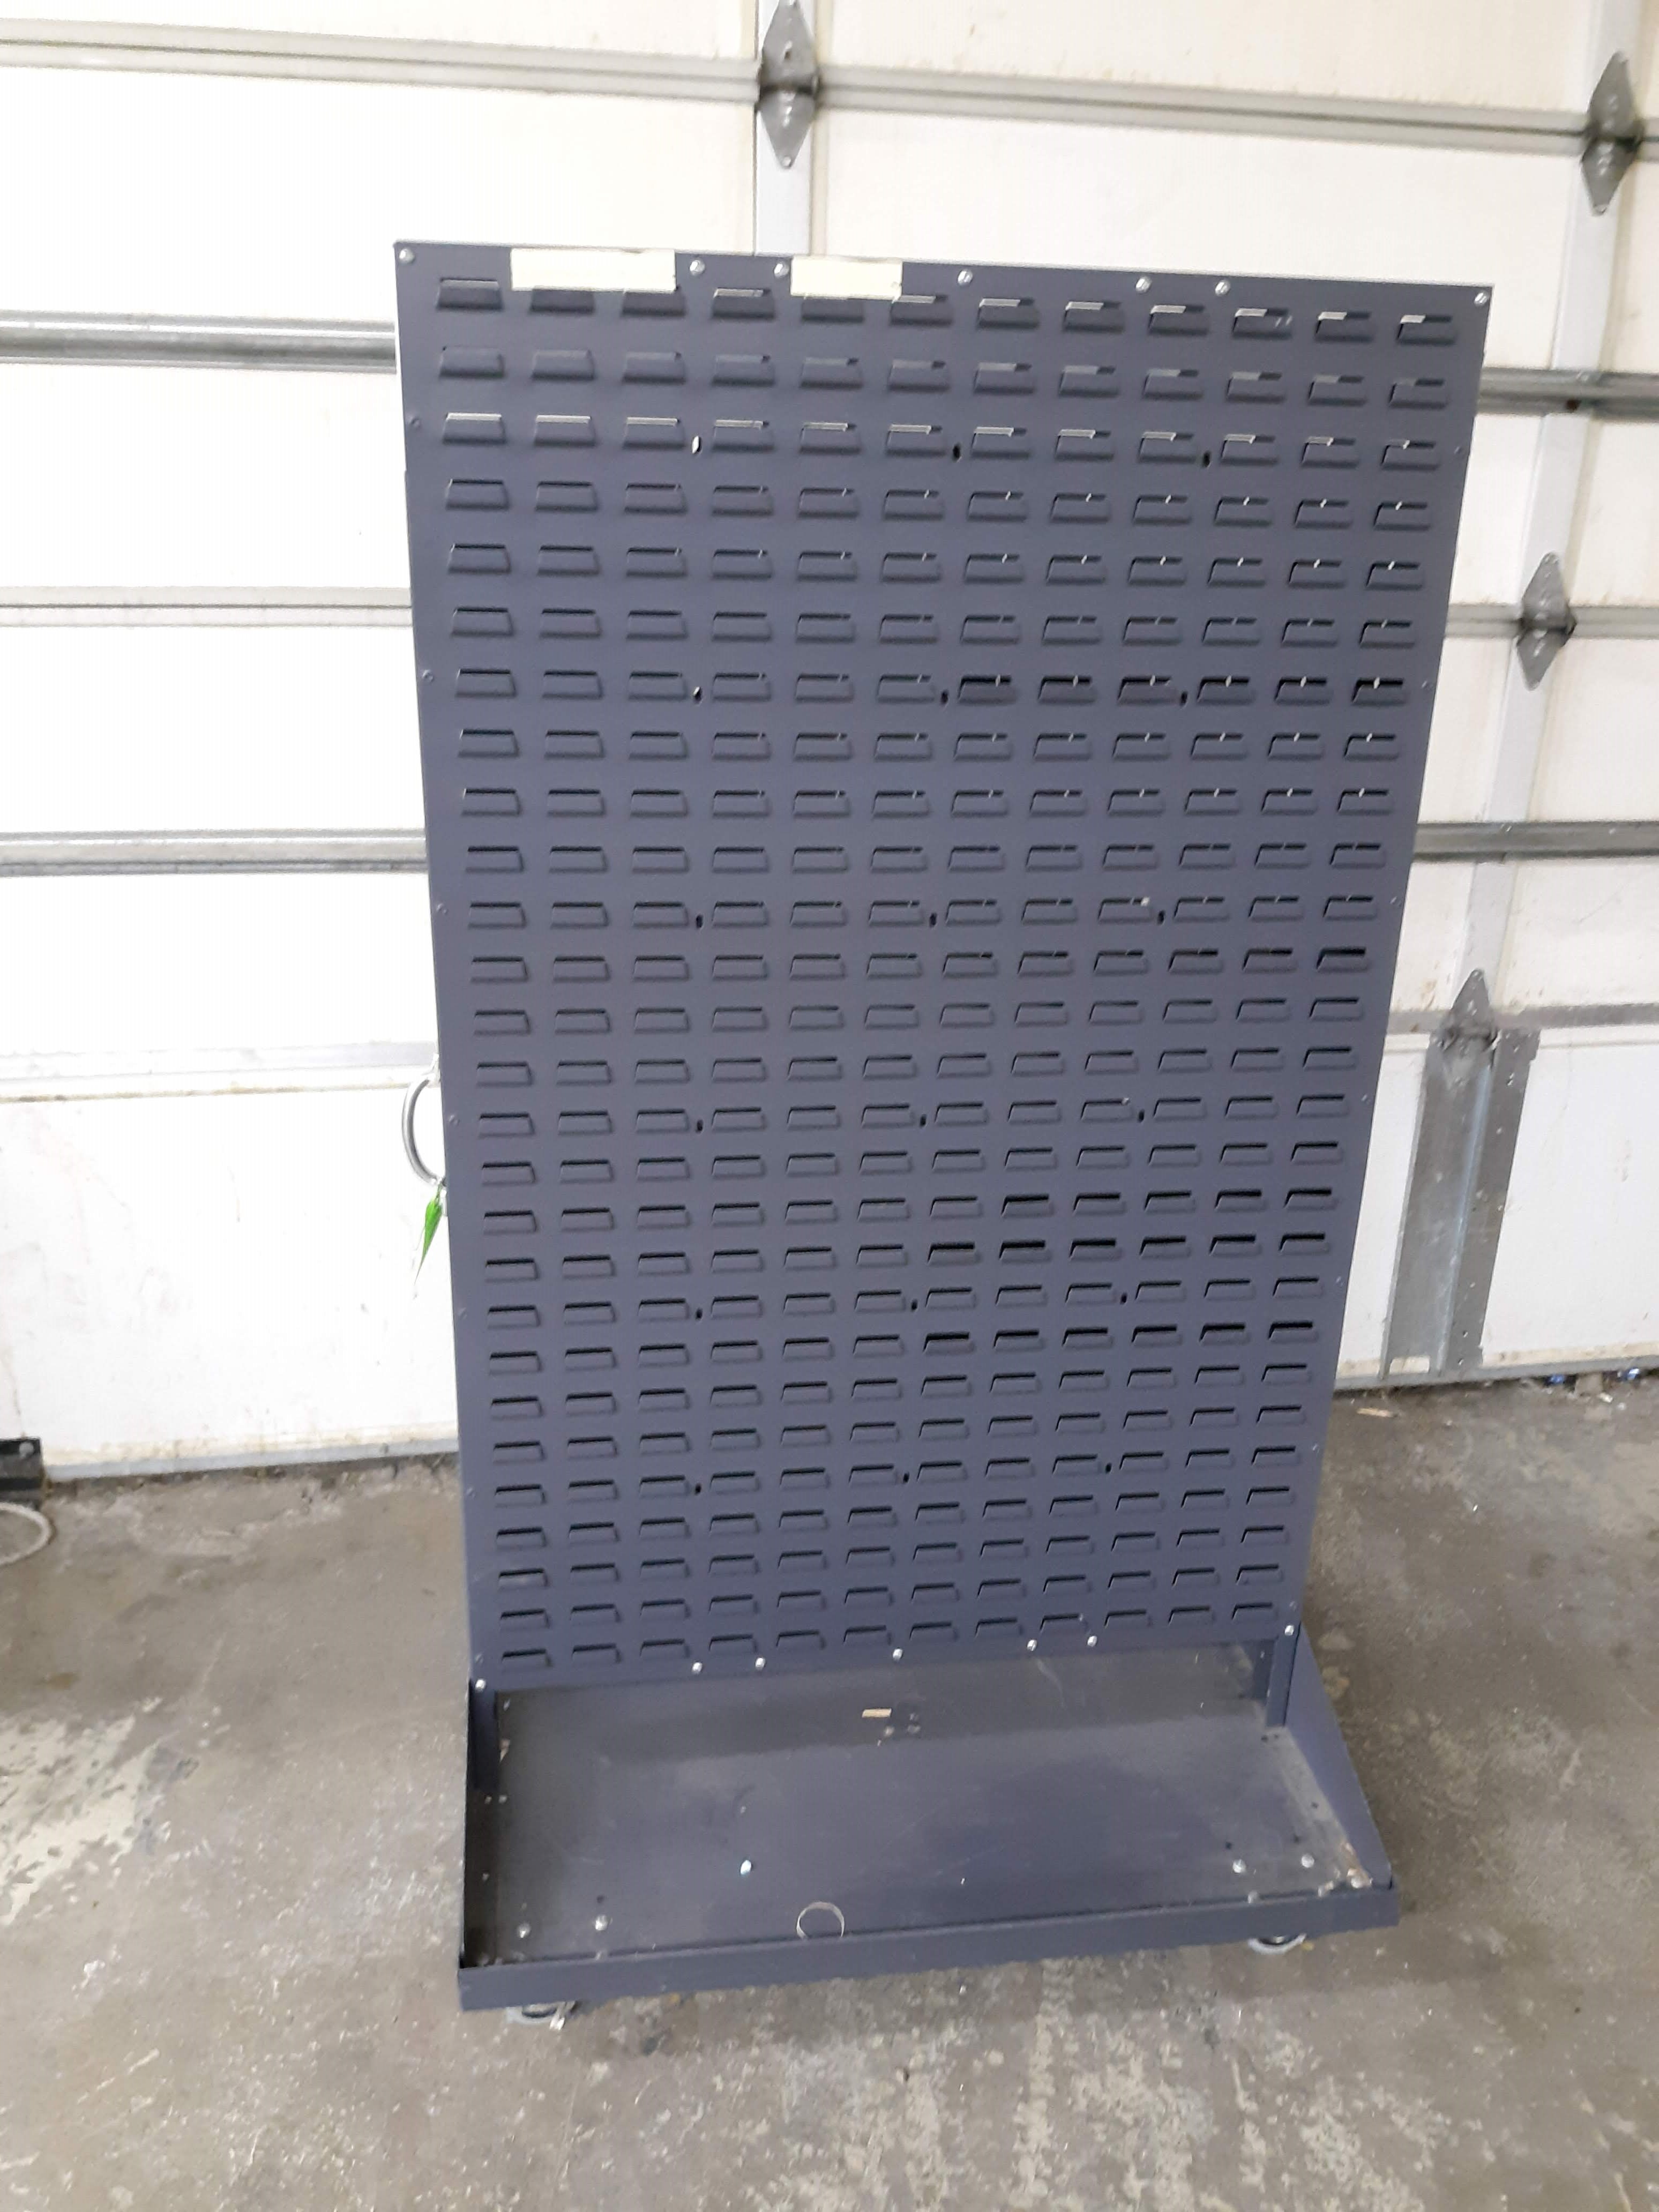 "METAL ROLLING BIN CART 36"" WIDE X 64"" TALL(LOCATED AT: 433 COUNCIL DRIVE, FORT WAYNE, IN 46825) - Image 2 of 2"